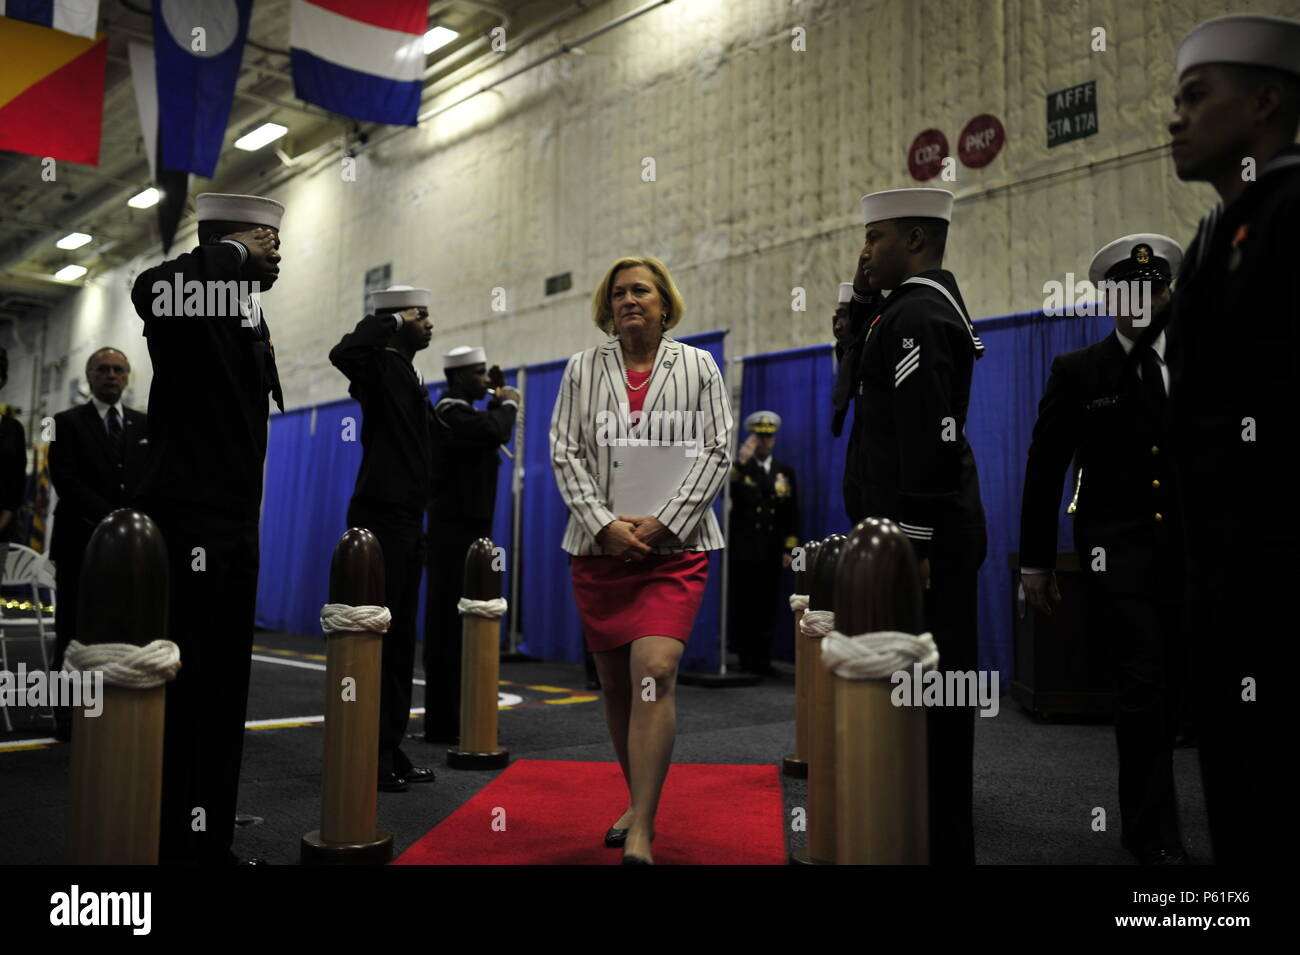 NEWPORT NEWS, Va., (April 8, 2016) Susan Ford Bales, ship sponsor and guest speaker, is rung aboard Pre-Commissioning Unit Gerald R. Ford (CVN 78) during a change of command in the hangar bay. Ford is the first of a new class of aircraft carriers currently under construction by Huntington Ingalls Newport News Shipbuilding. (U.S. Navy photo by Mass Communication Specialist Seaman Apprentice Connor D. Loessin/Released) - Stock Image